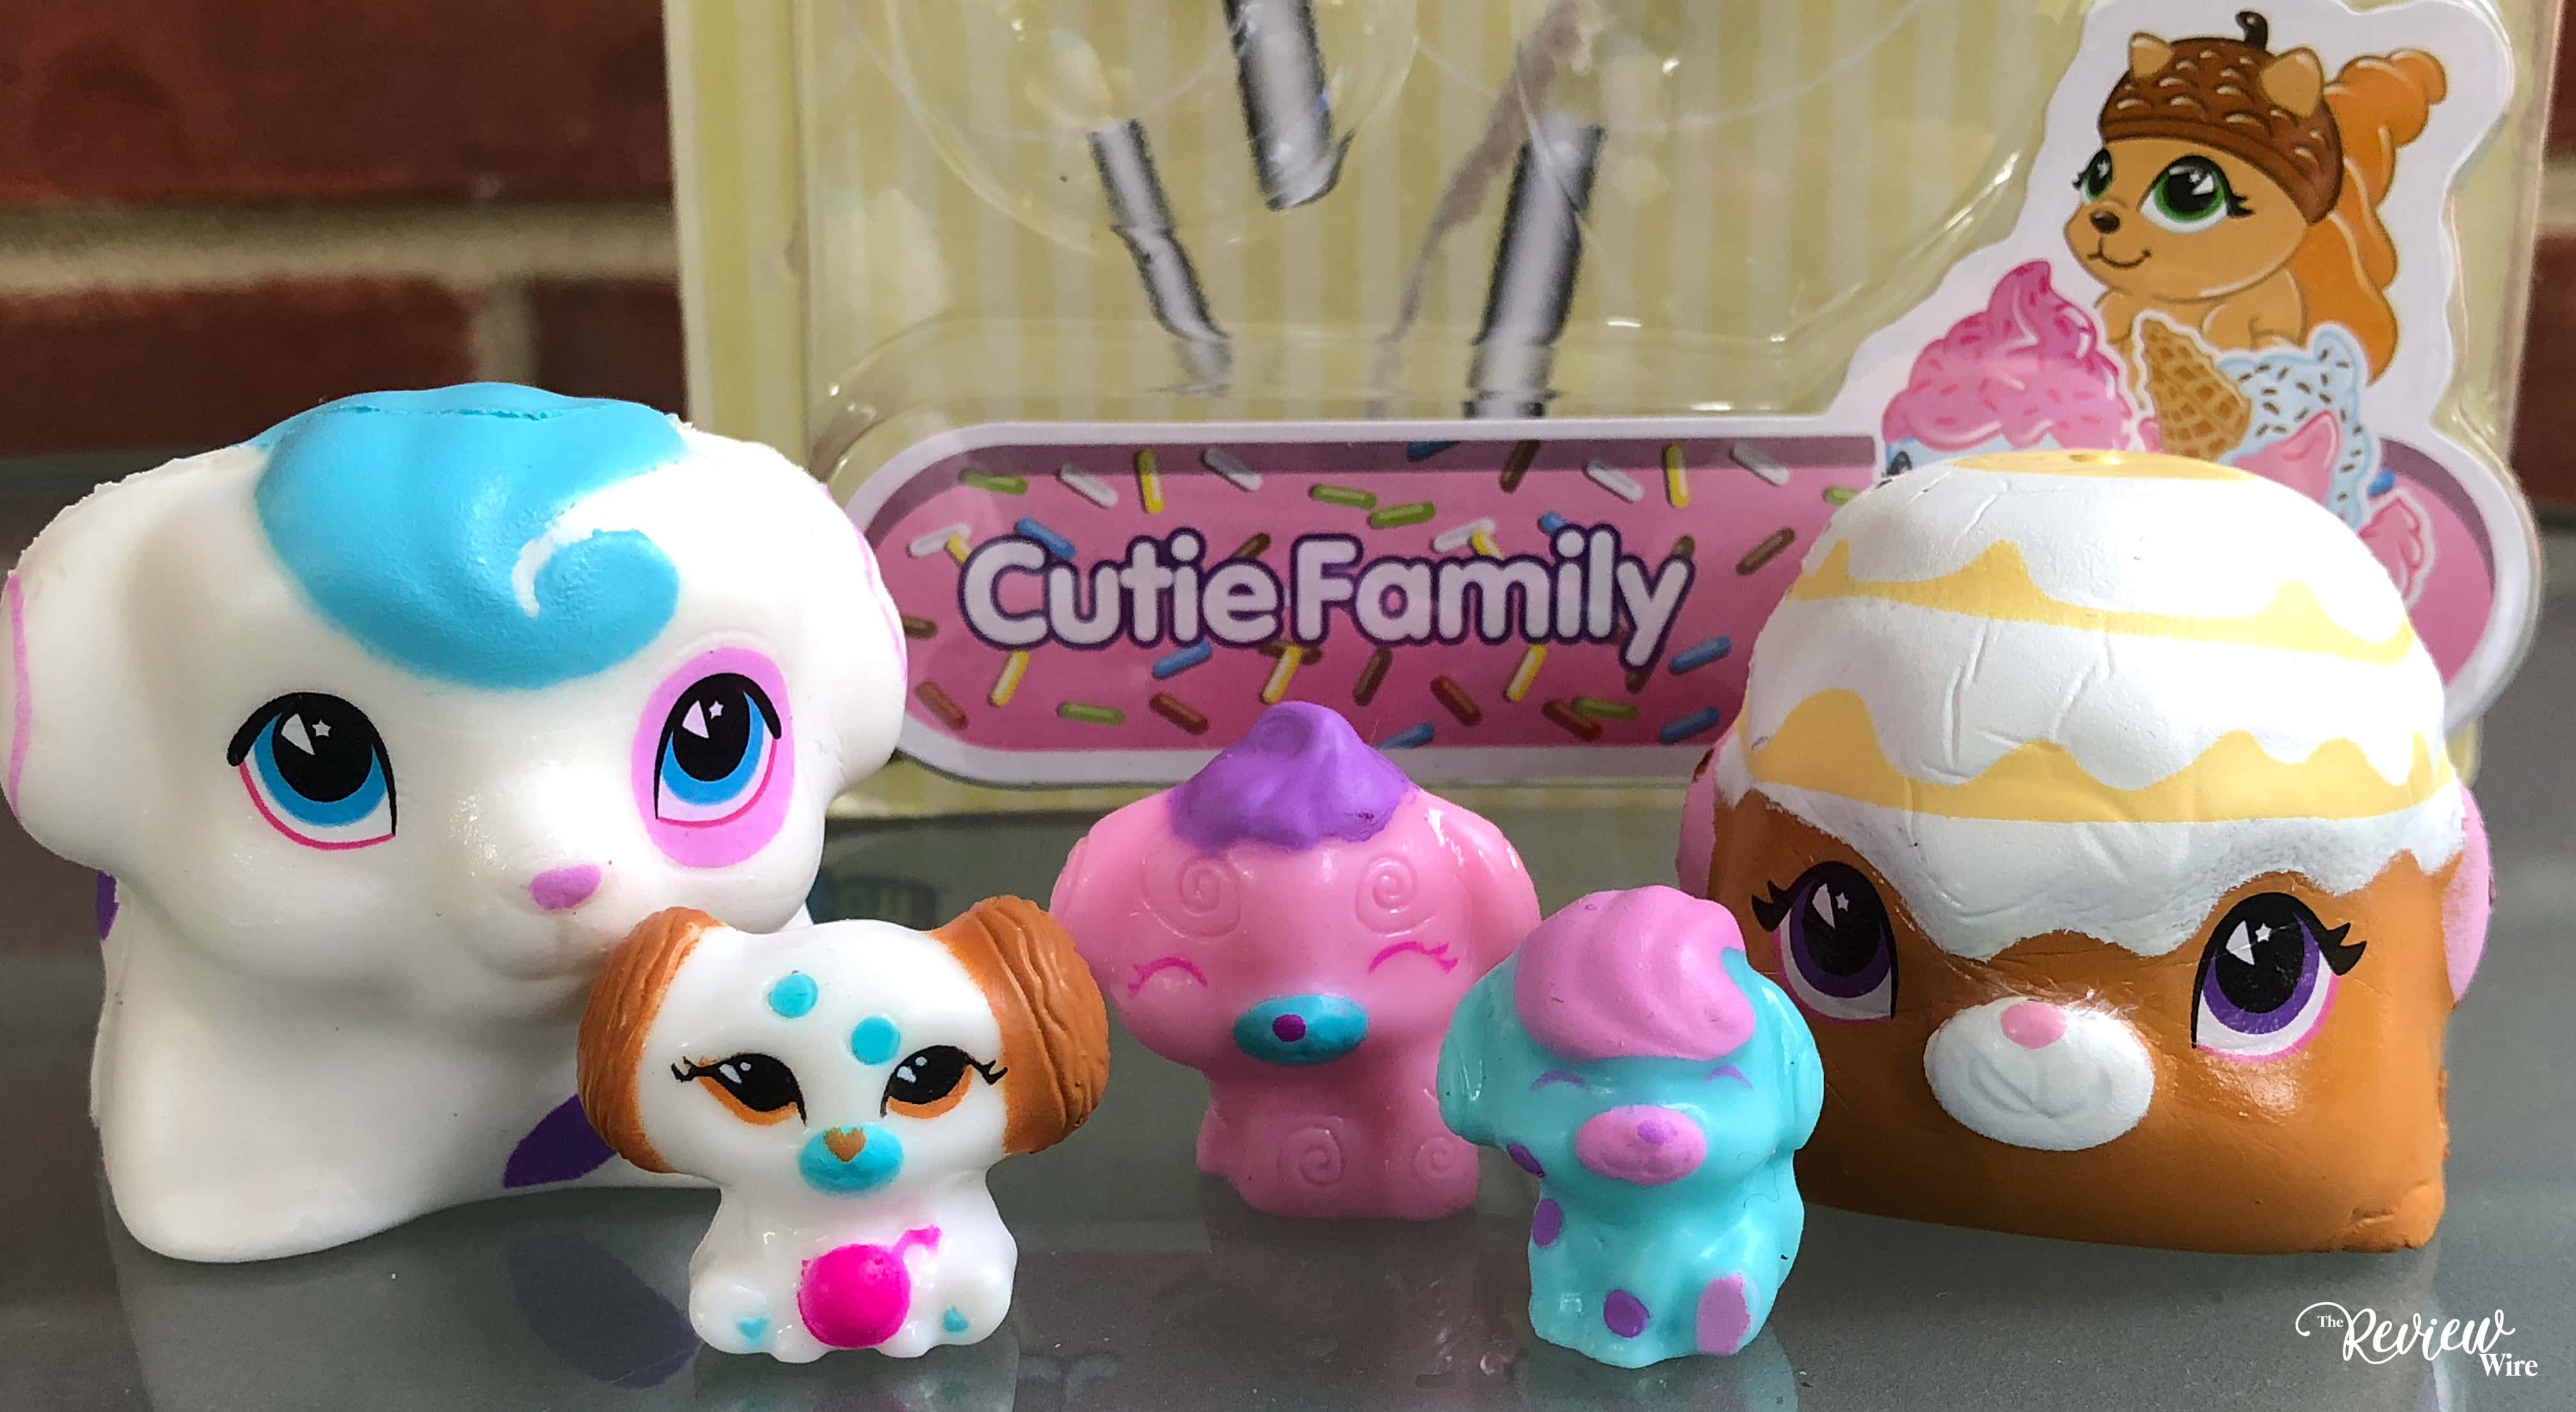 The Review Wire: CakePop Cuties Cutie Family Set Review